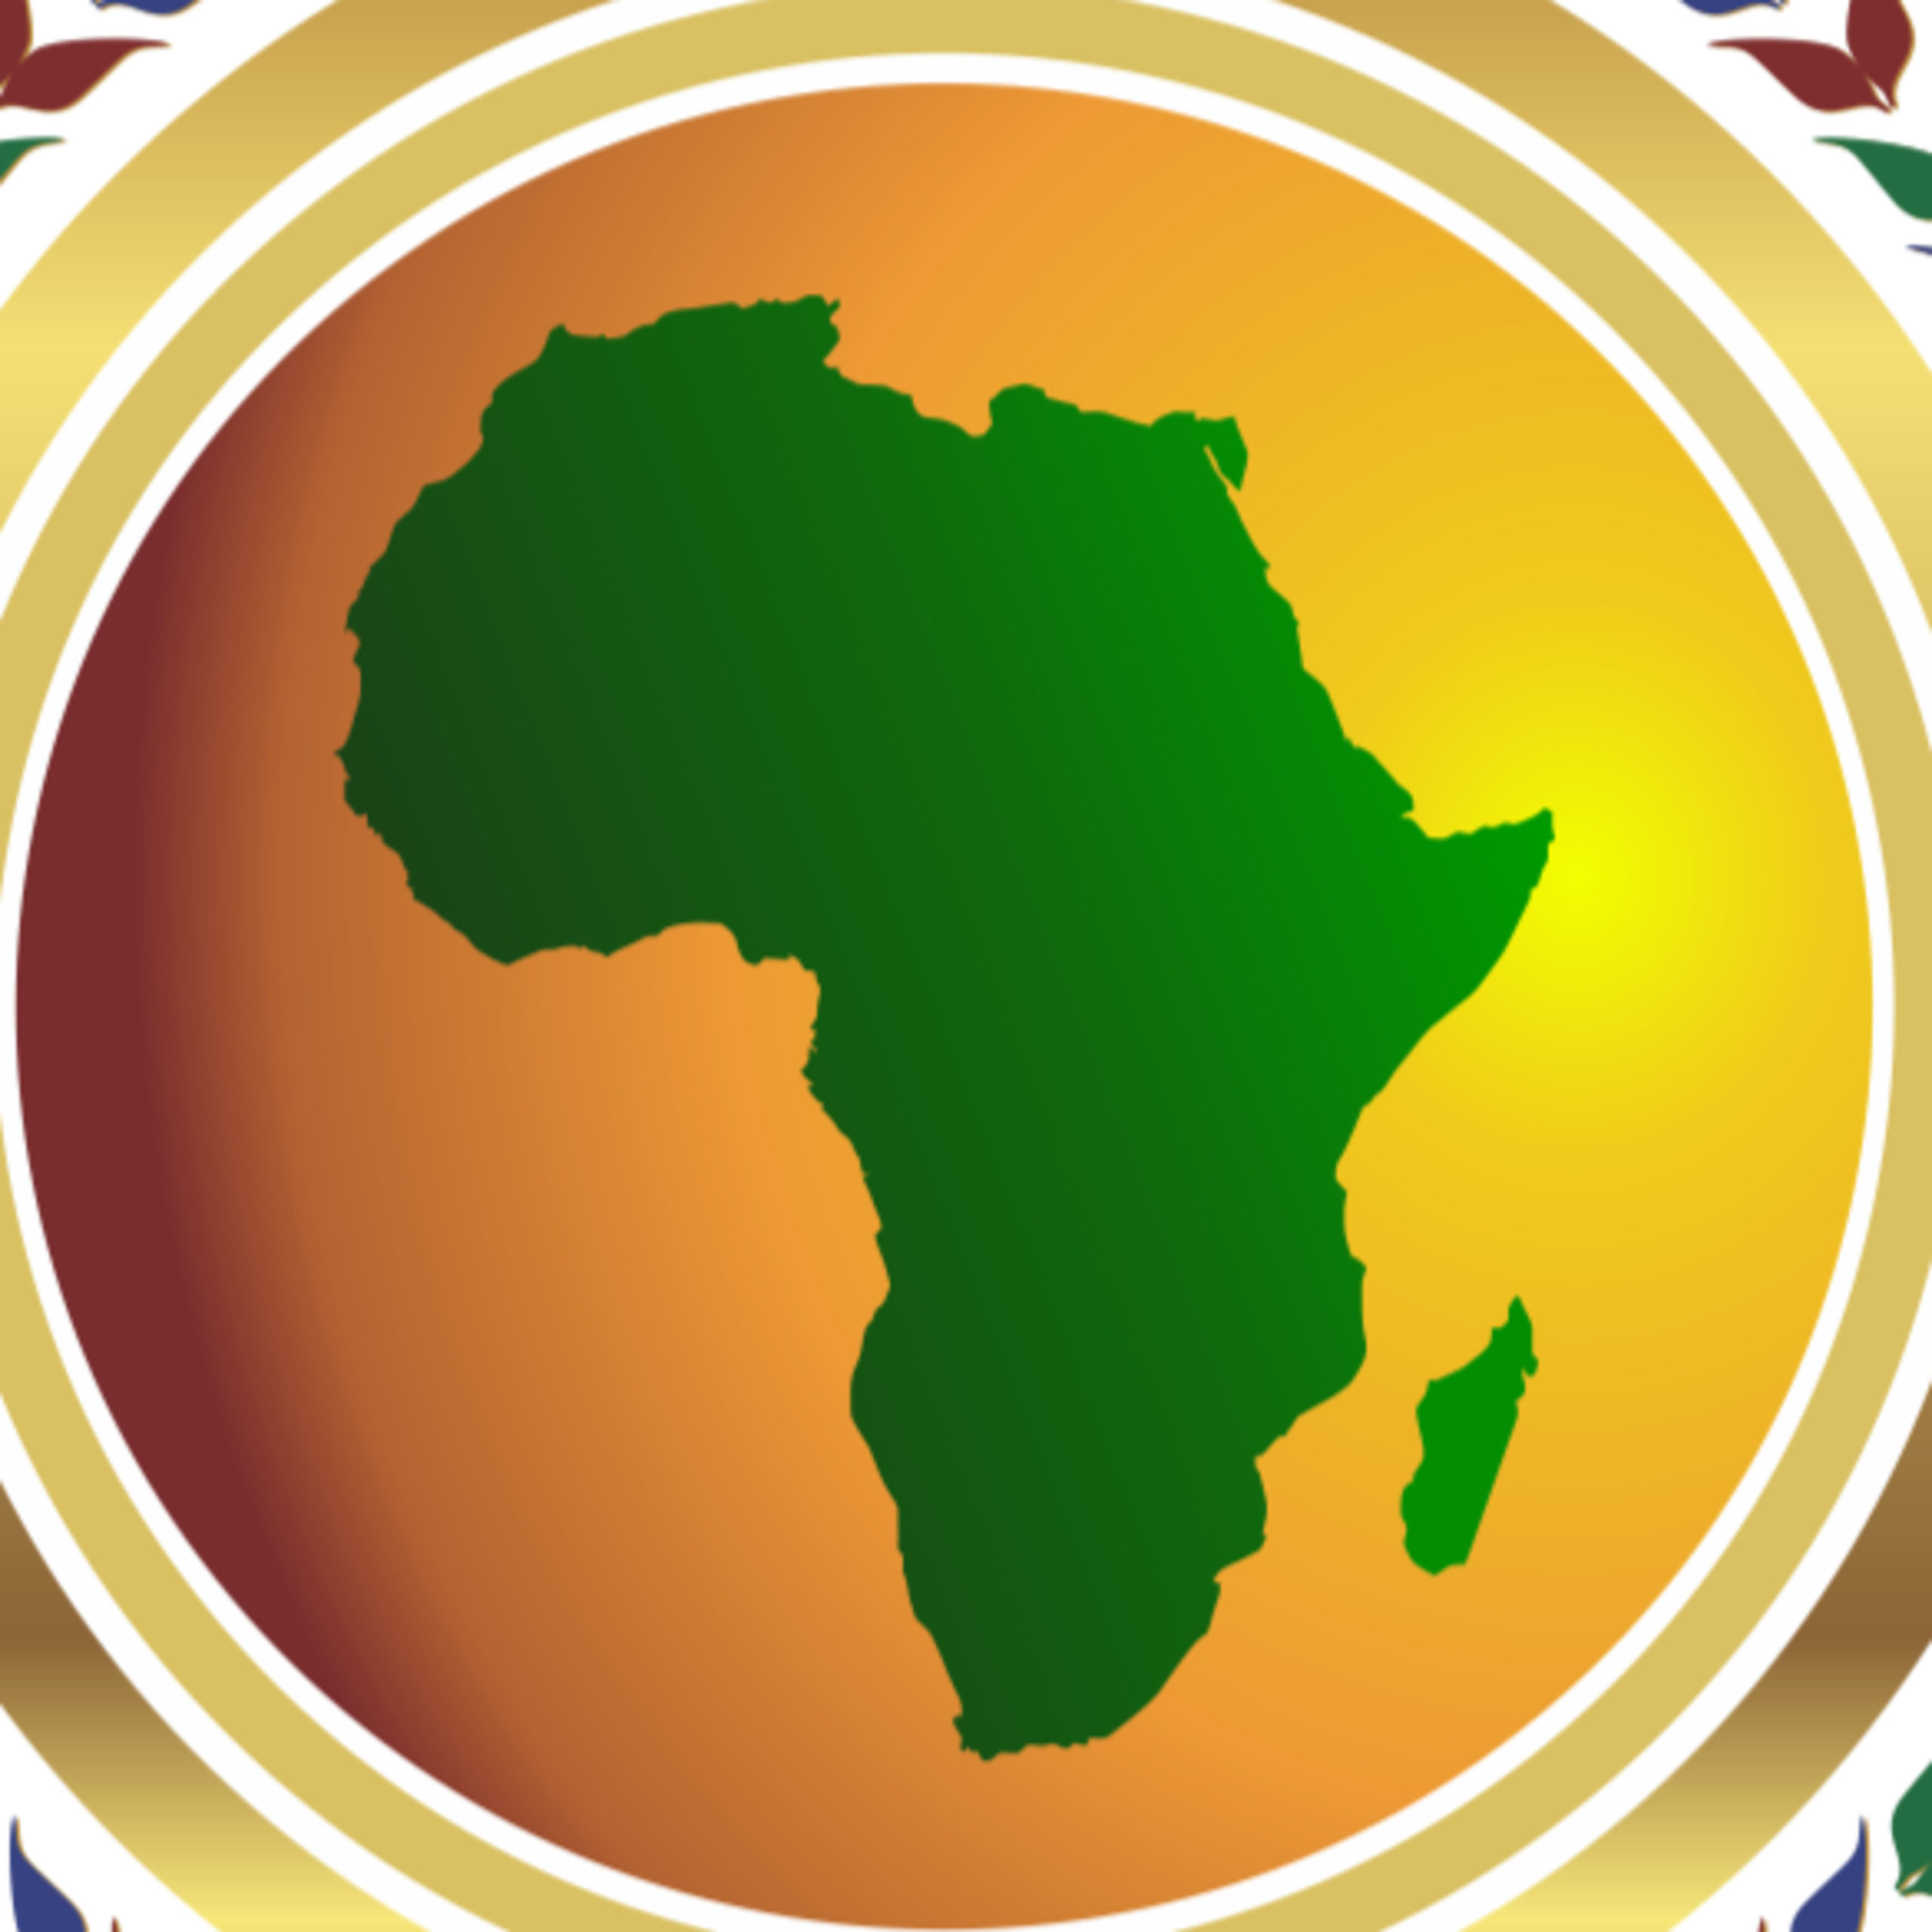 The Second African Tourism Board Second Ministerial Round Table Opened